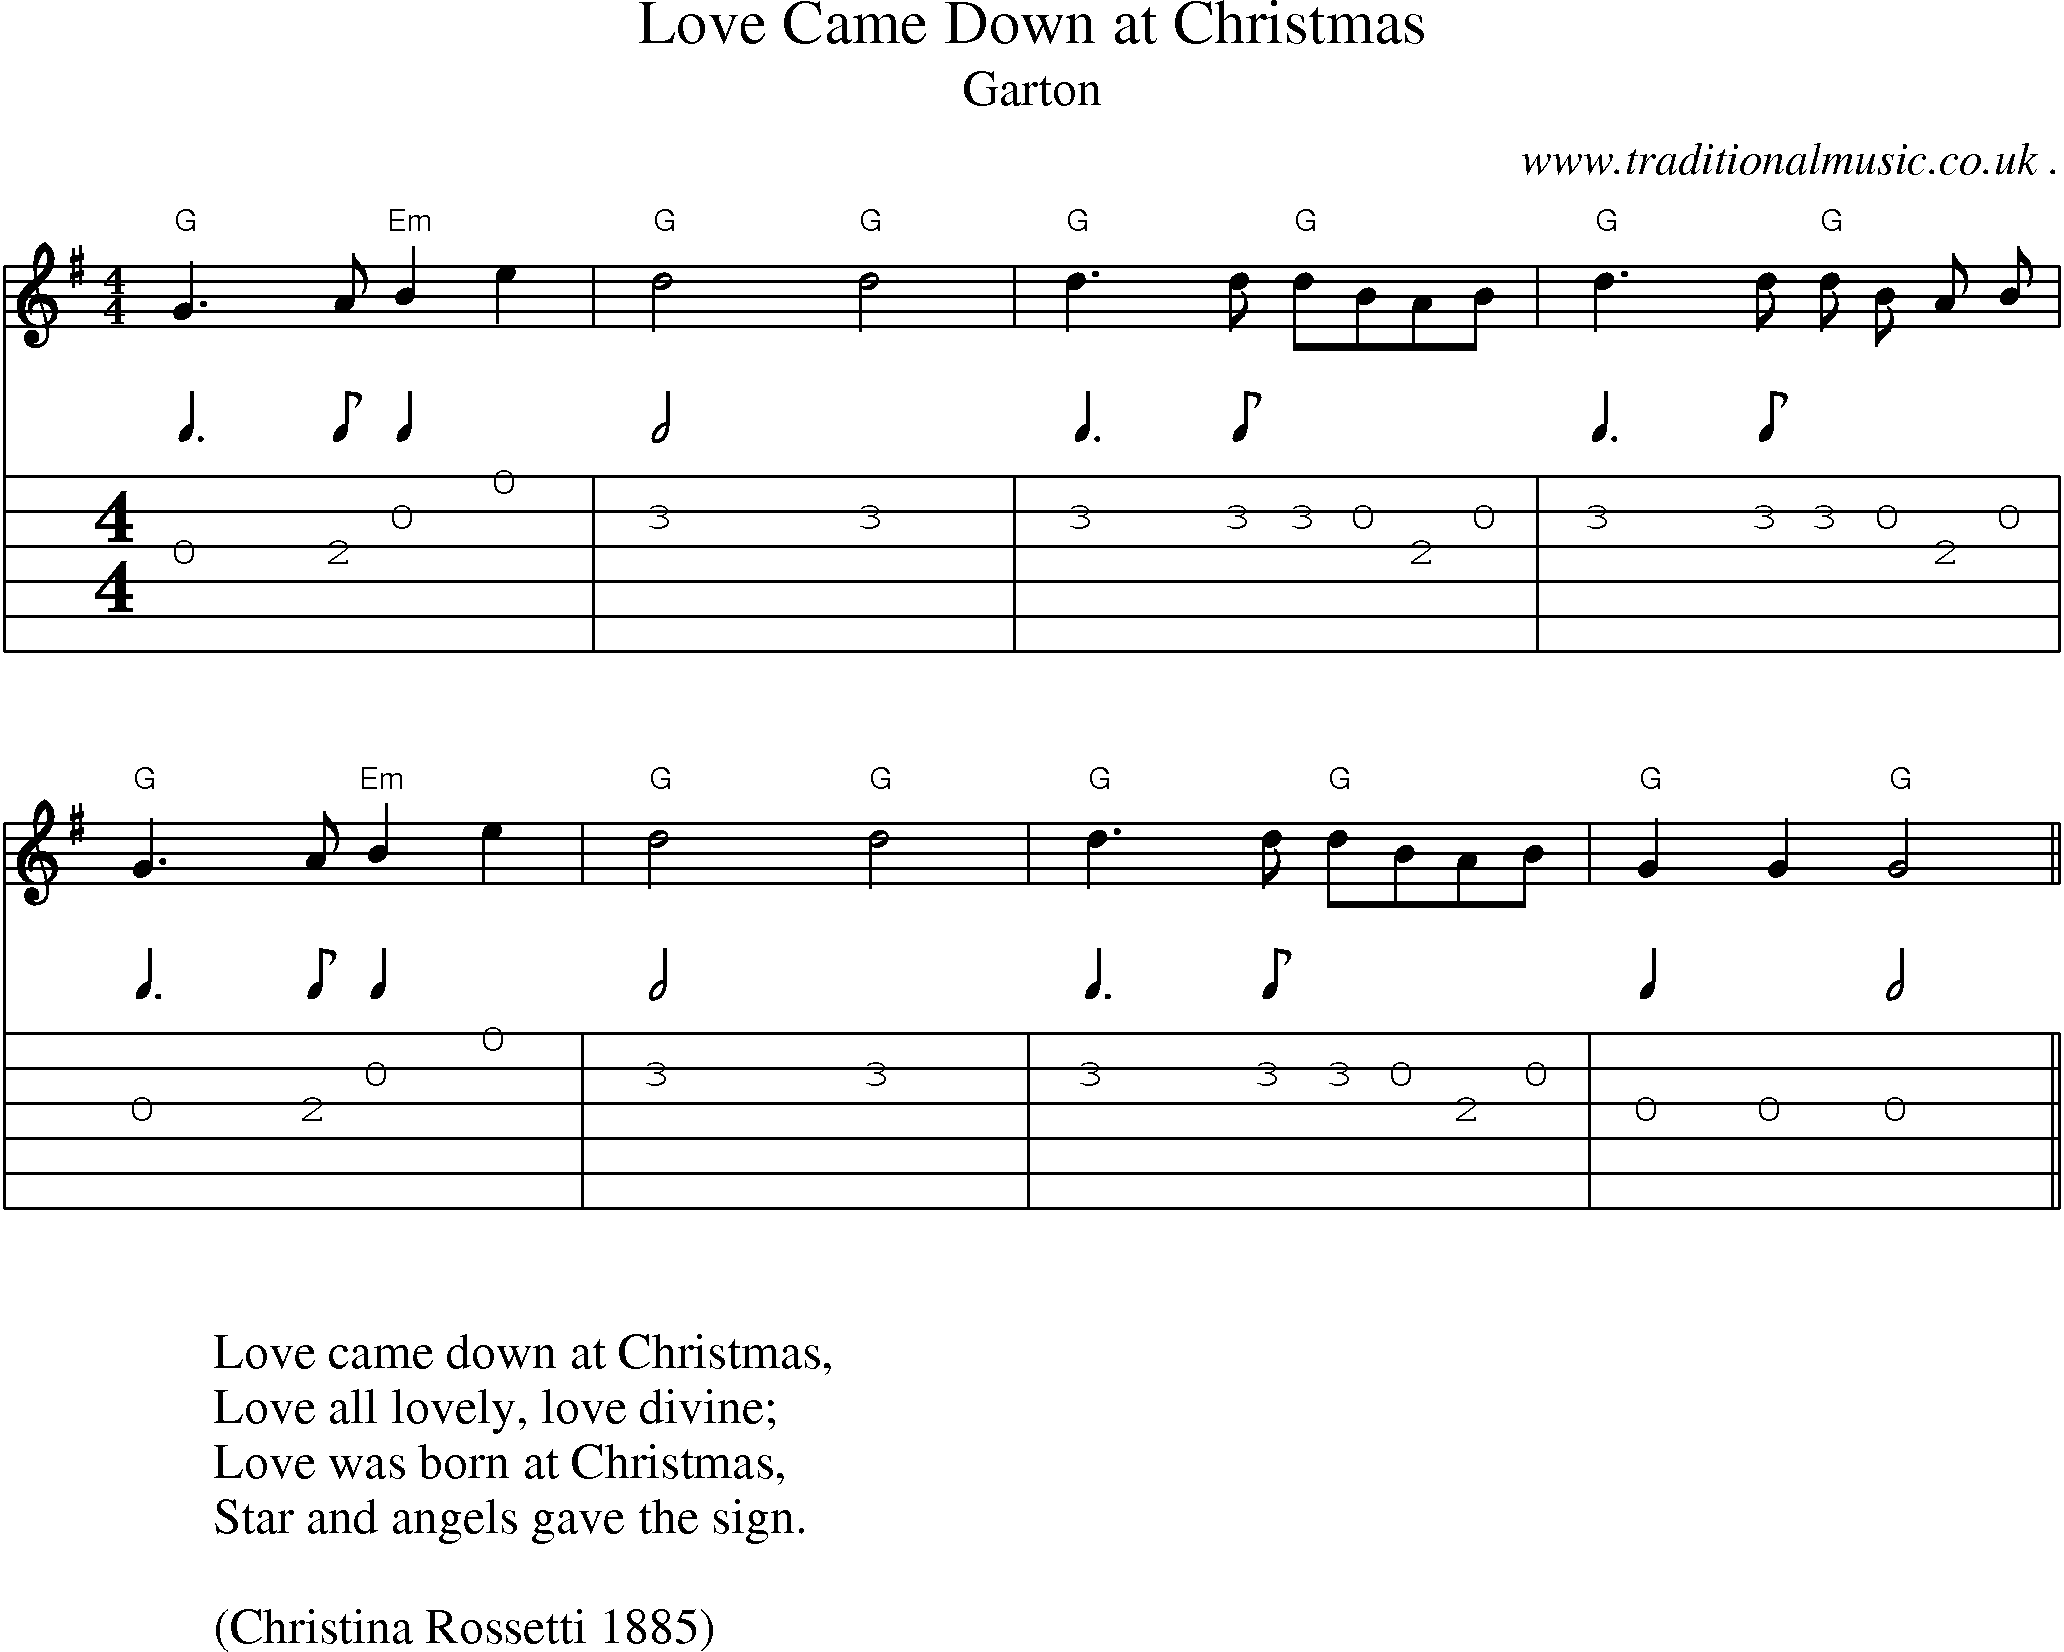 Christmas Guitar Tabs.Common Session Tunes Scores And Tabs For Guitar Love Came